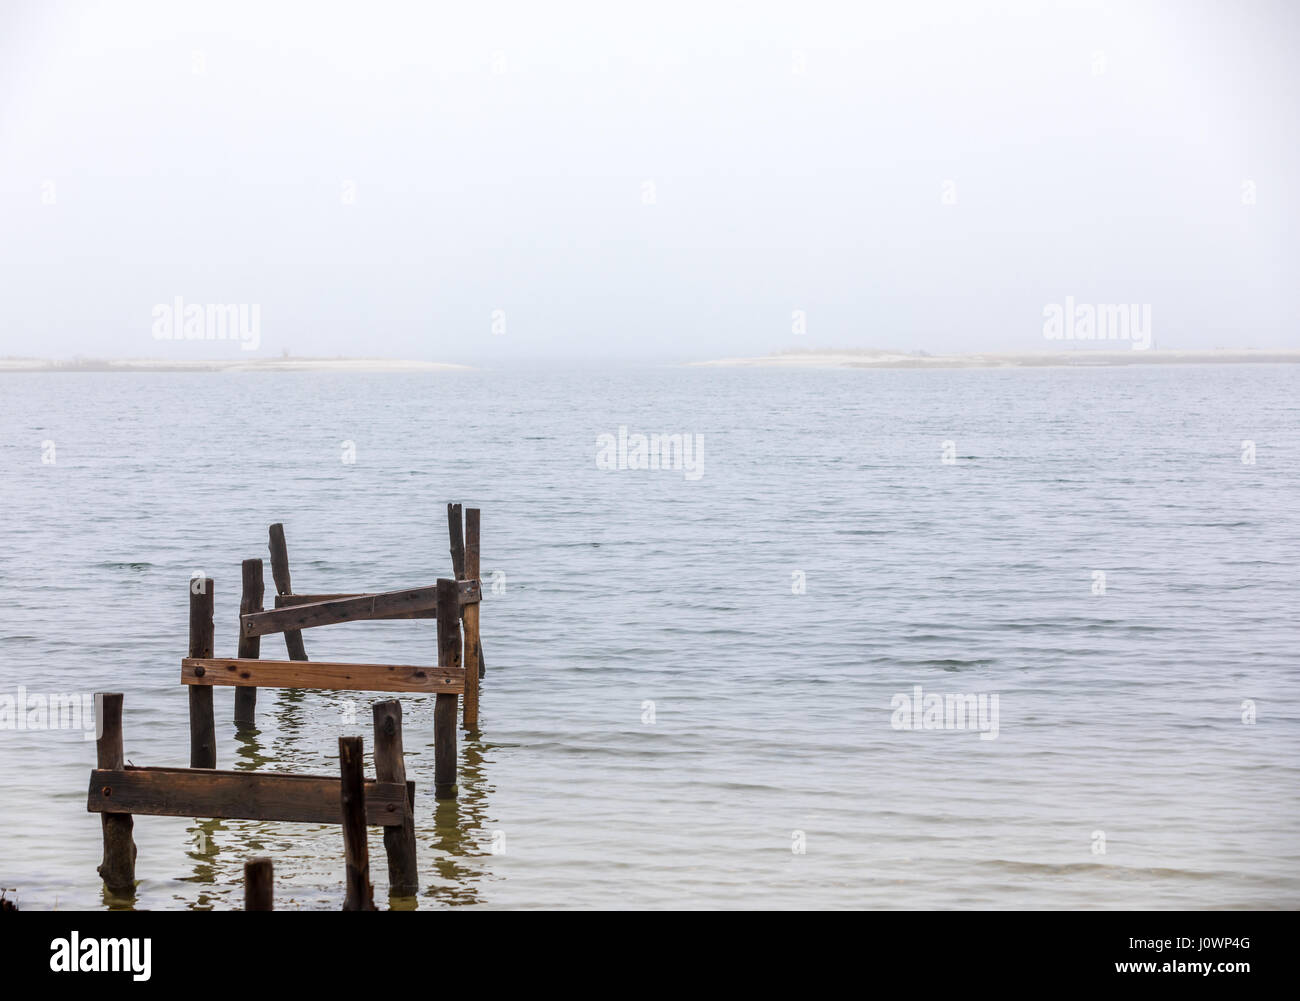 remnants of an old dock leading out into cold water on a foggy day in Hampton Bays, NY - Stock Image